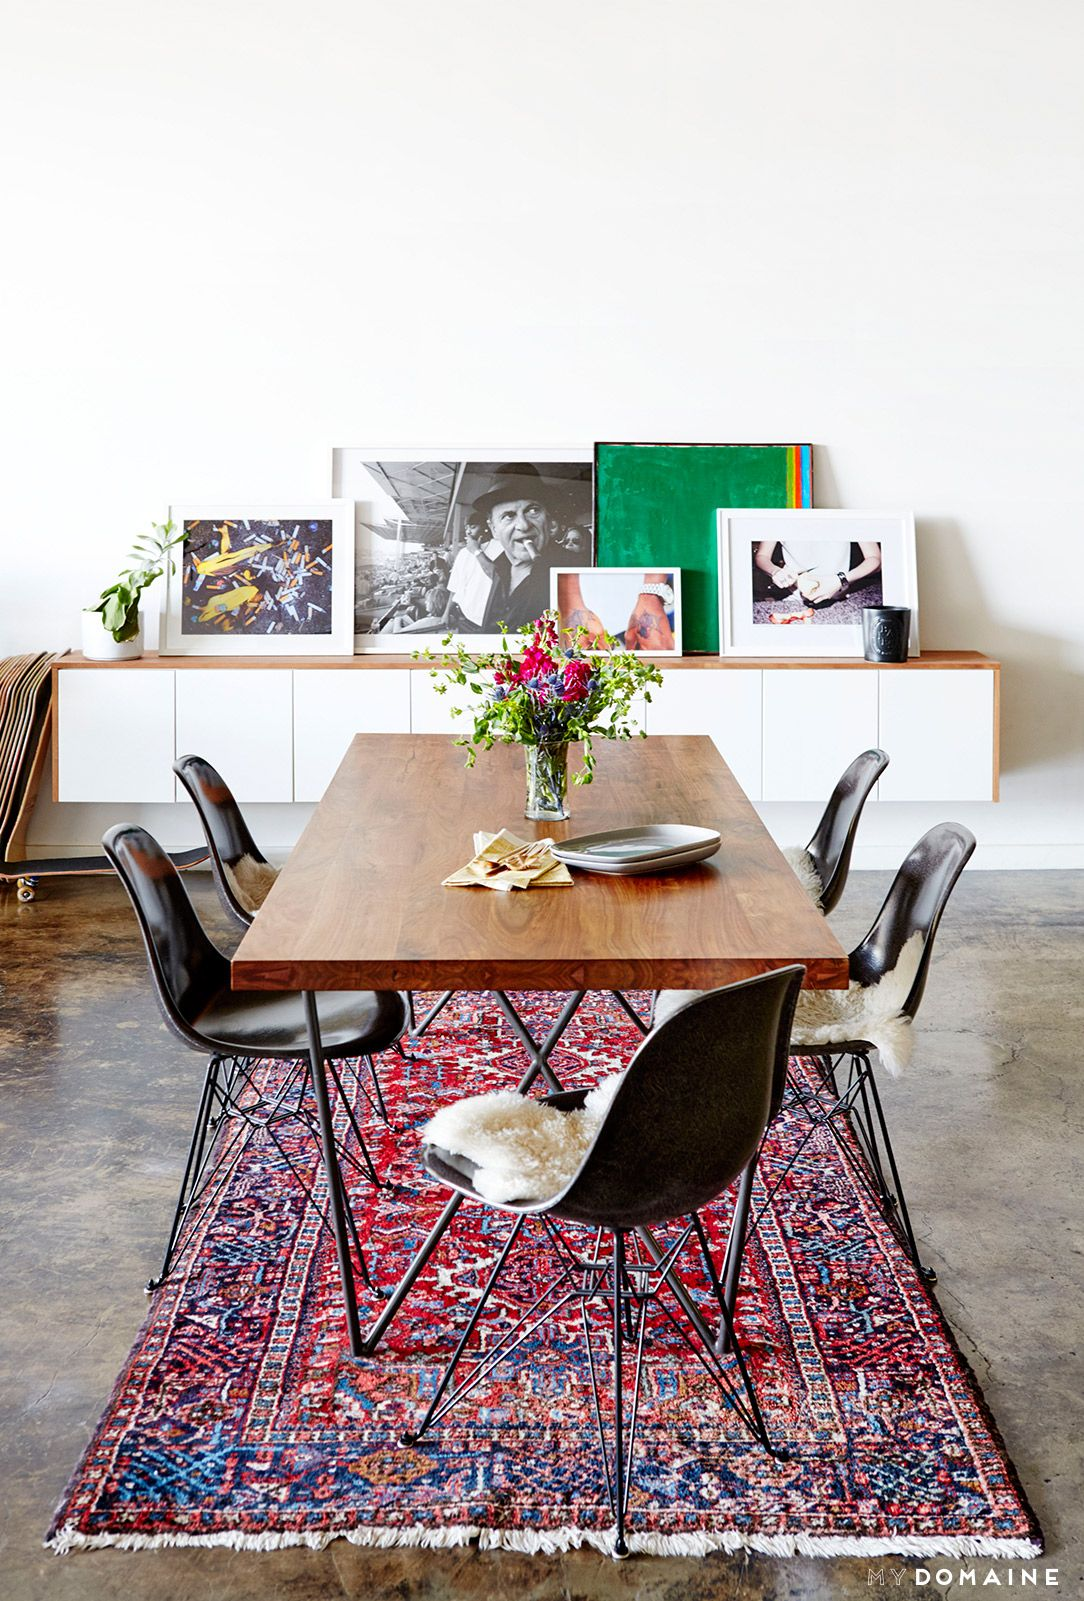 An industrial and modern dining space with